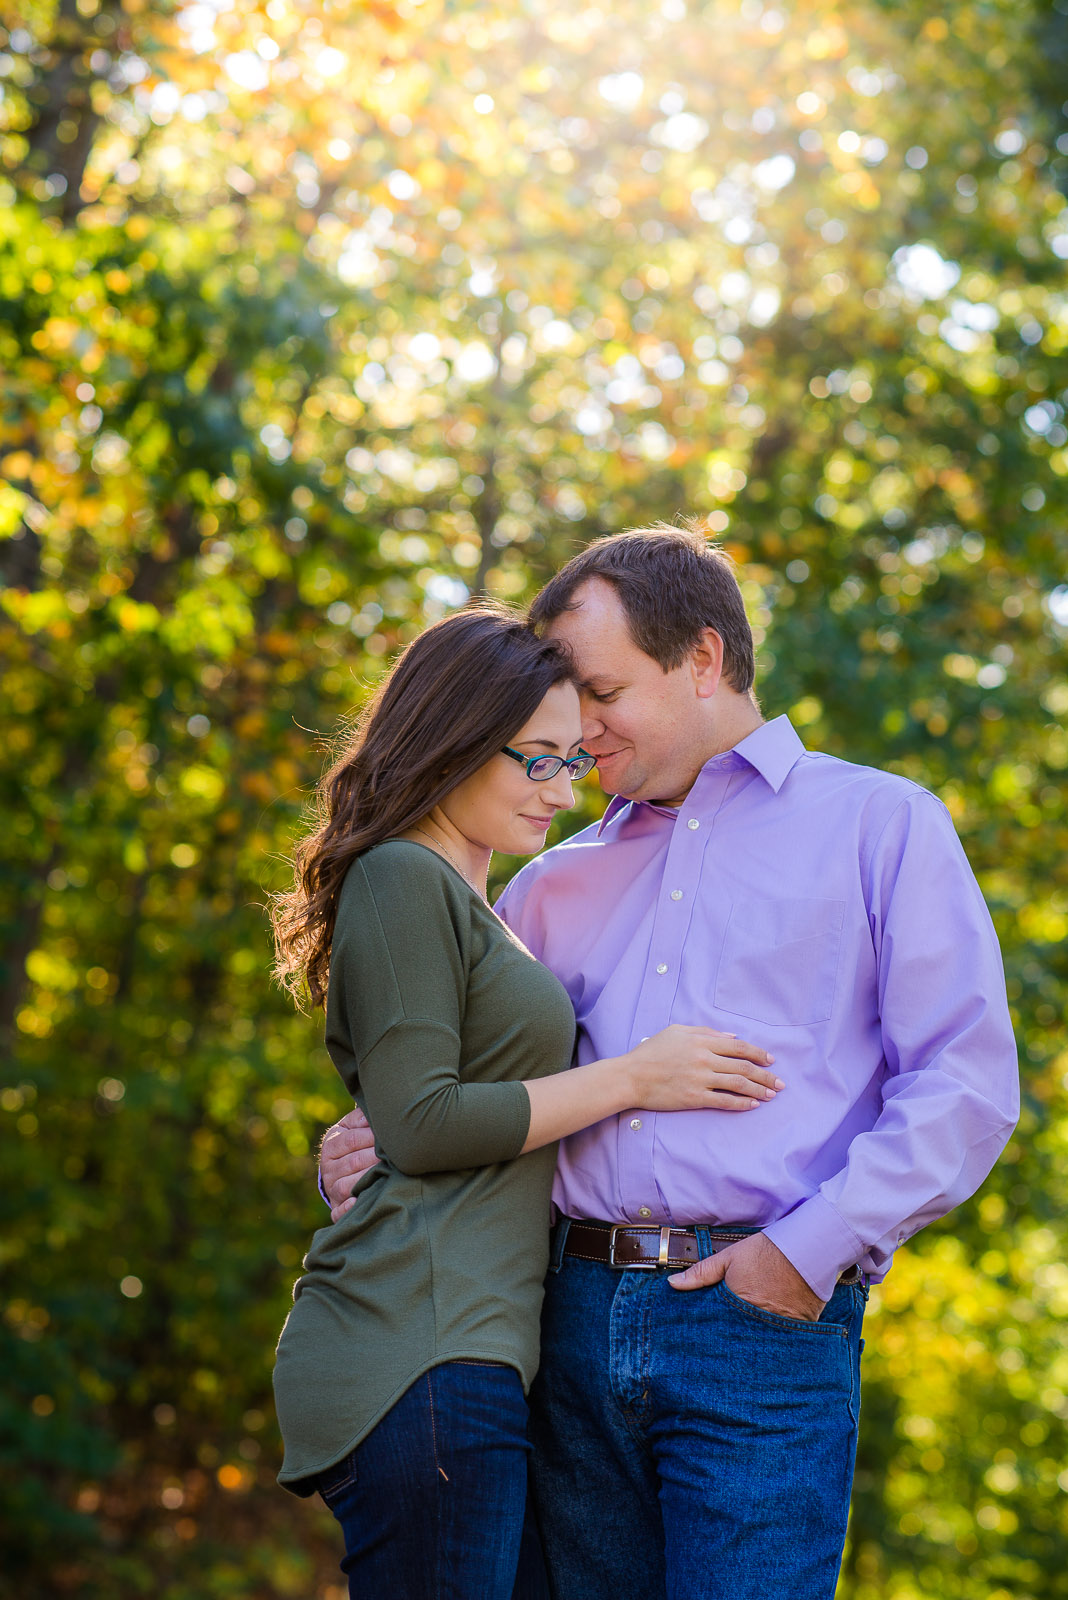 Eric_and_Christy_Photography_Blog_2017_Best_Engagement-28